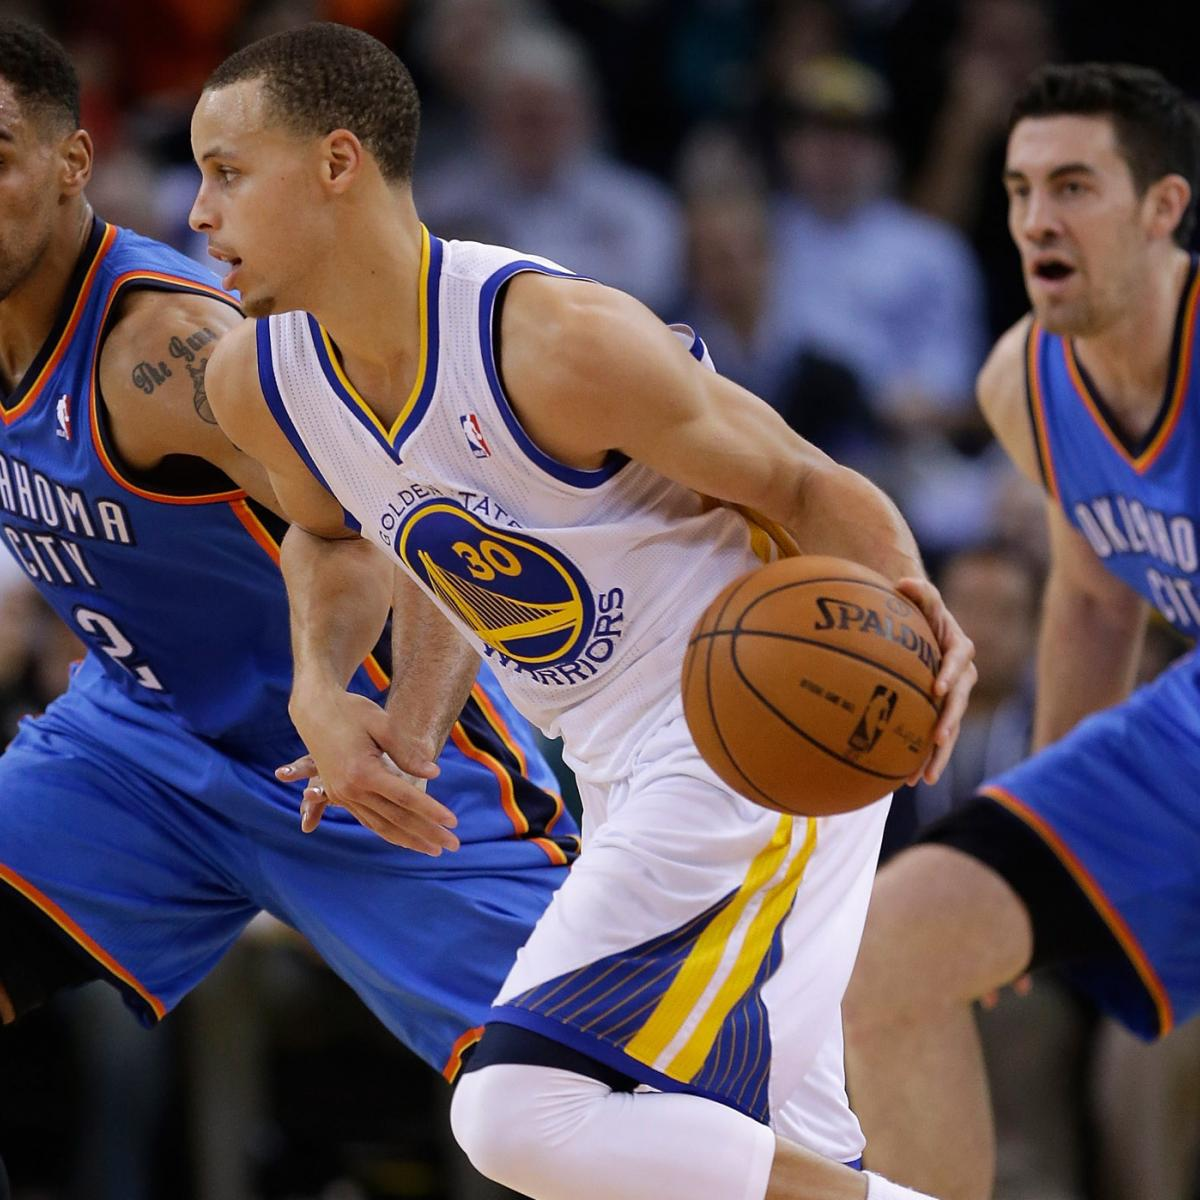 Rockets Vs Warriors Head To Head This Season: Warriors Vs. Rockets: Stephen Curry Vs. Jeremy Lin Is Key